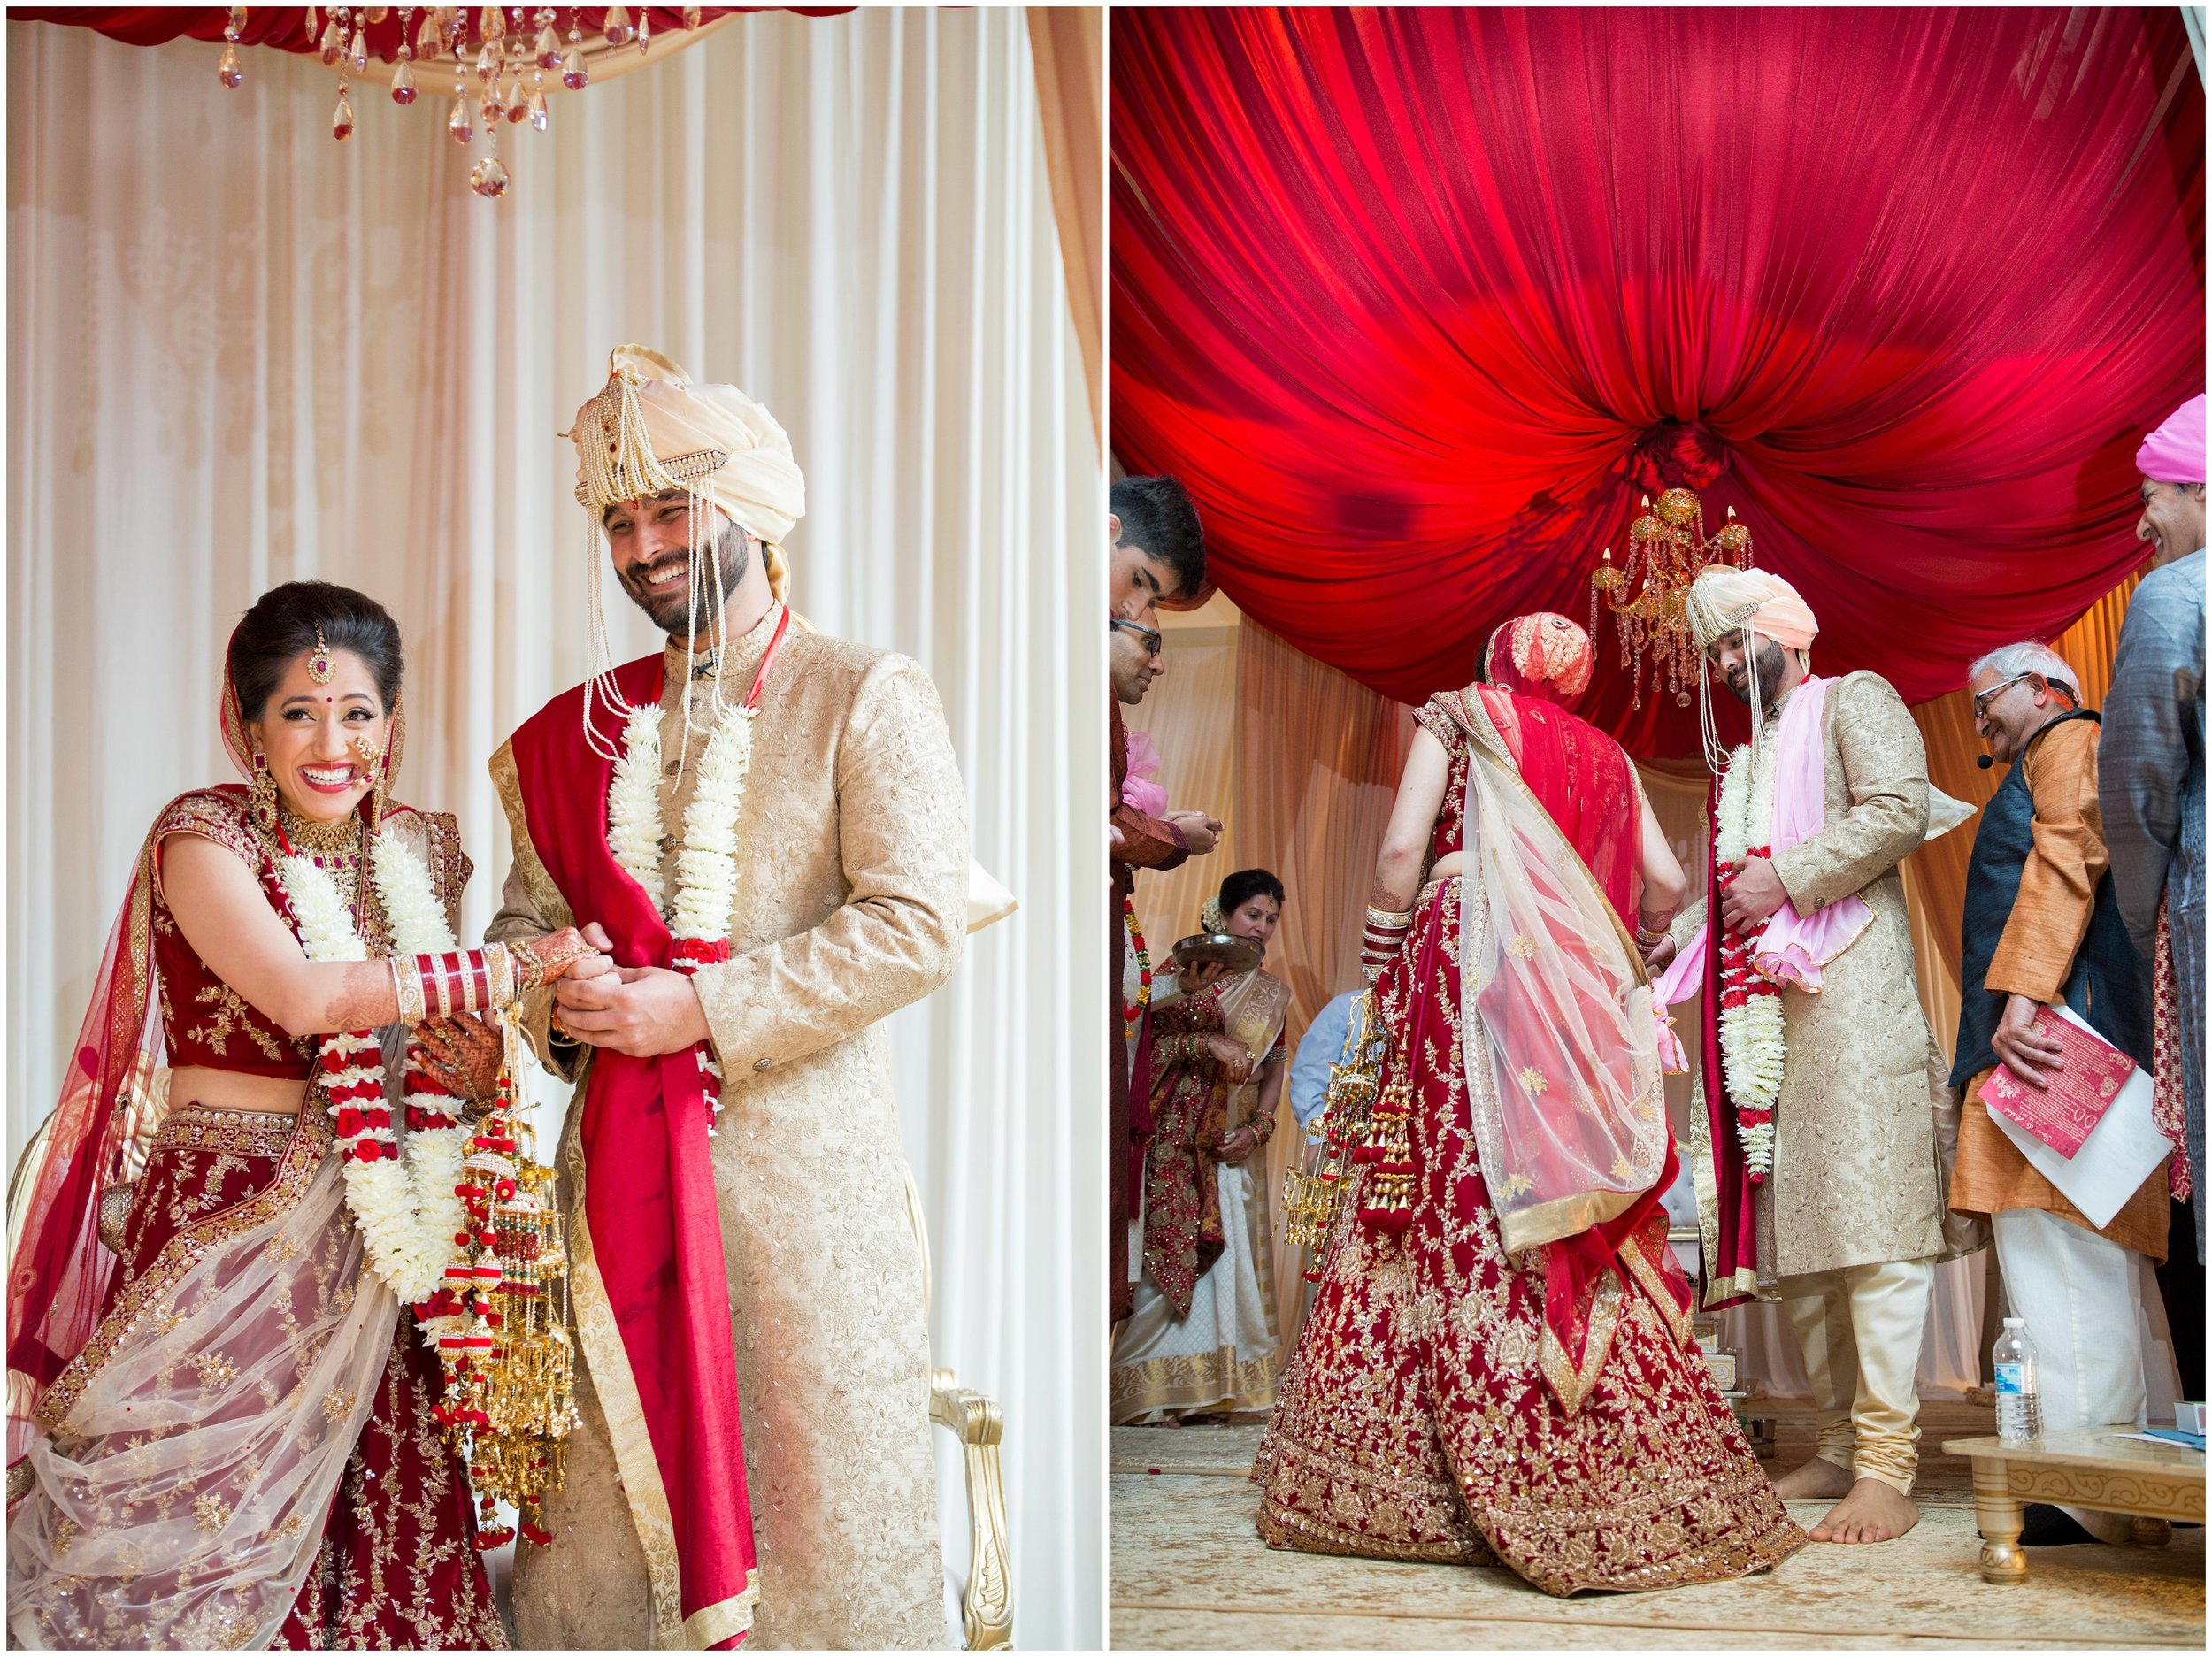 Le Cape Weddings - South Asian Wedding in Illinois - Tanvi and Anshul -0143_LuxuryDestinationPhotographer.jpg